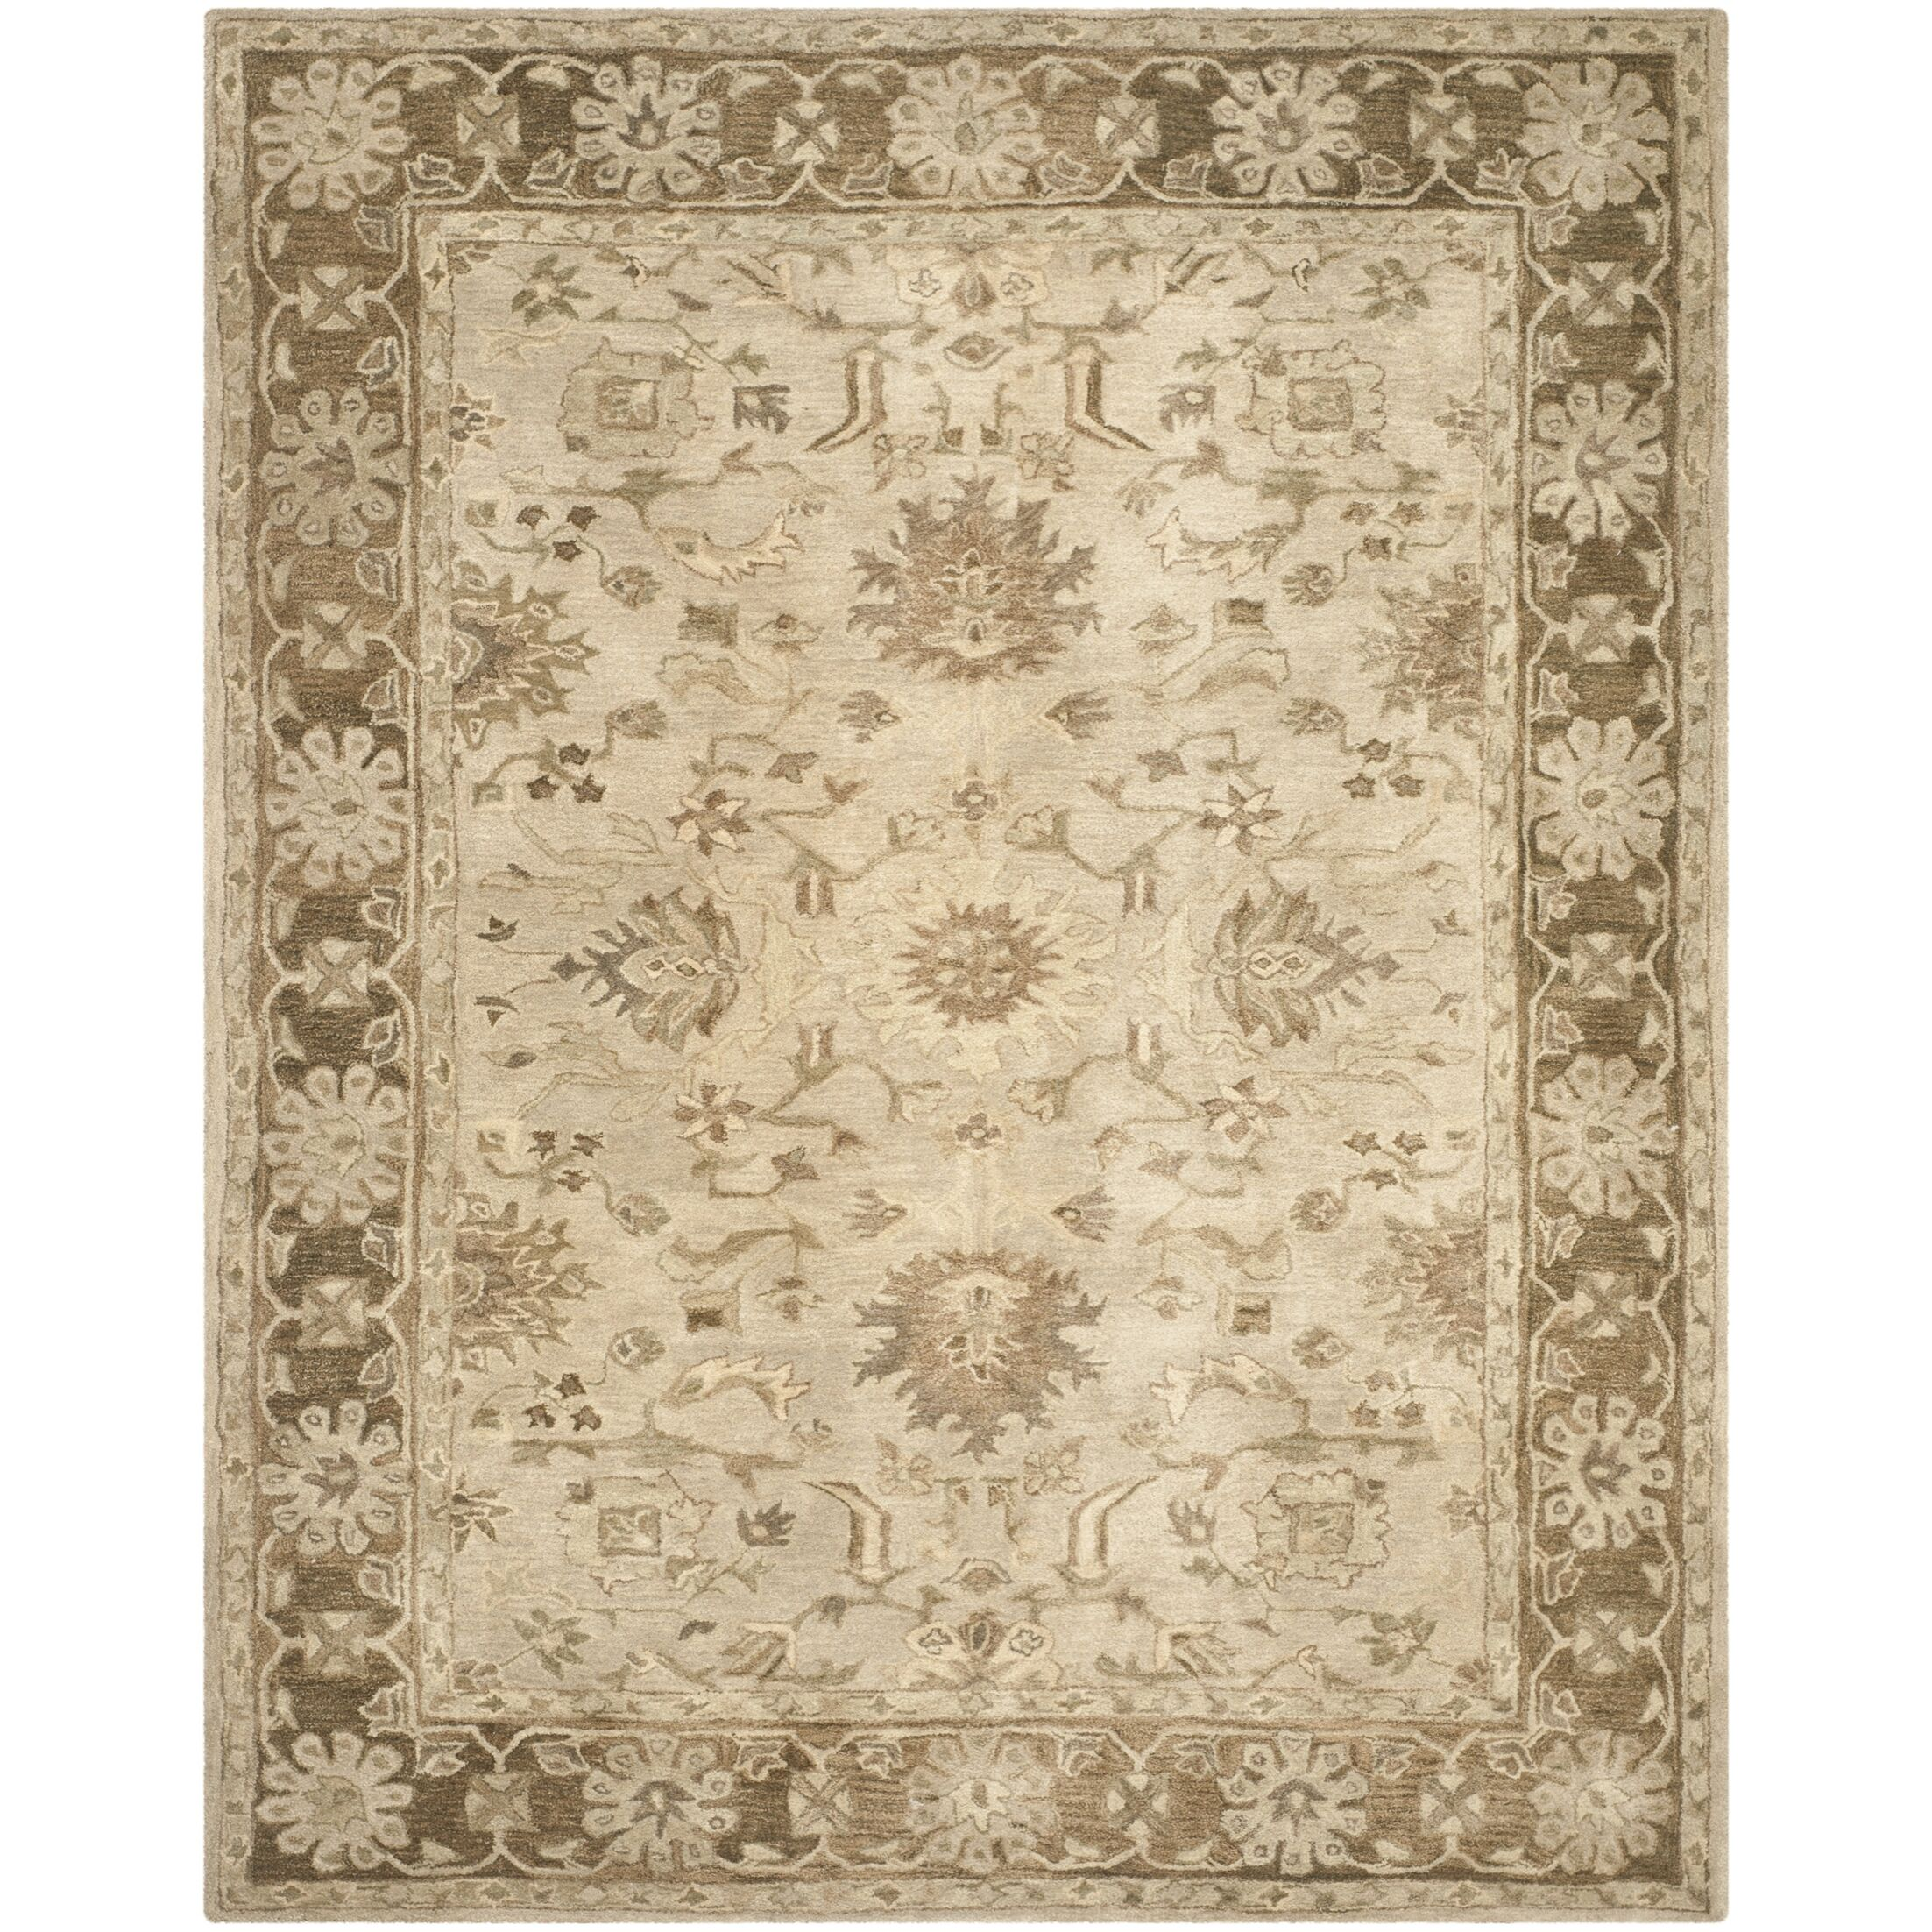 Anatolia Brown Area Rug Rug Size: Rectangle 6' x 9'